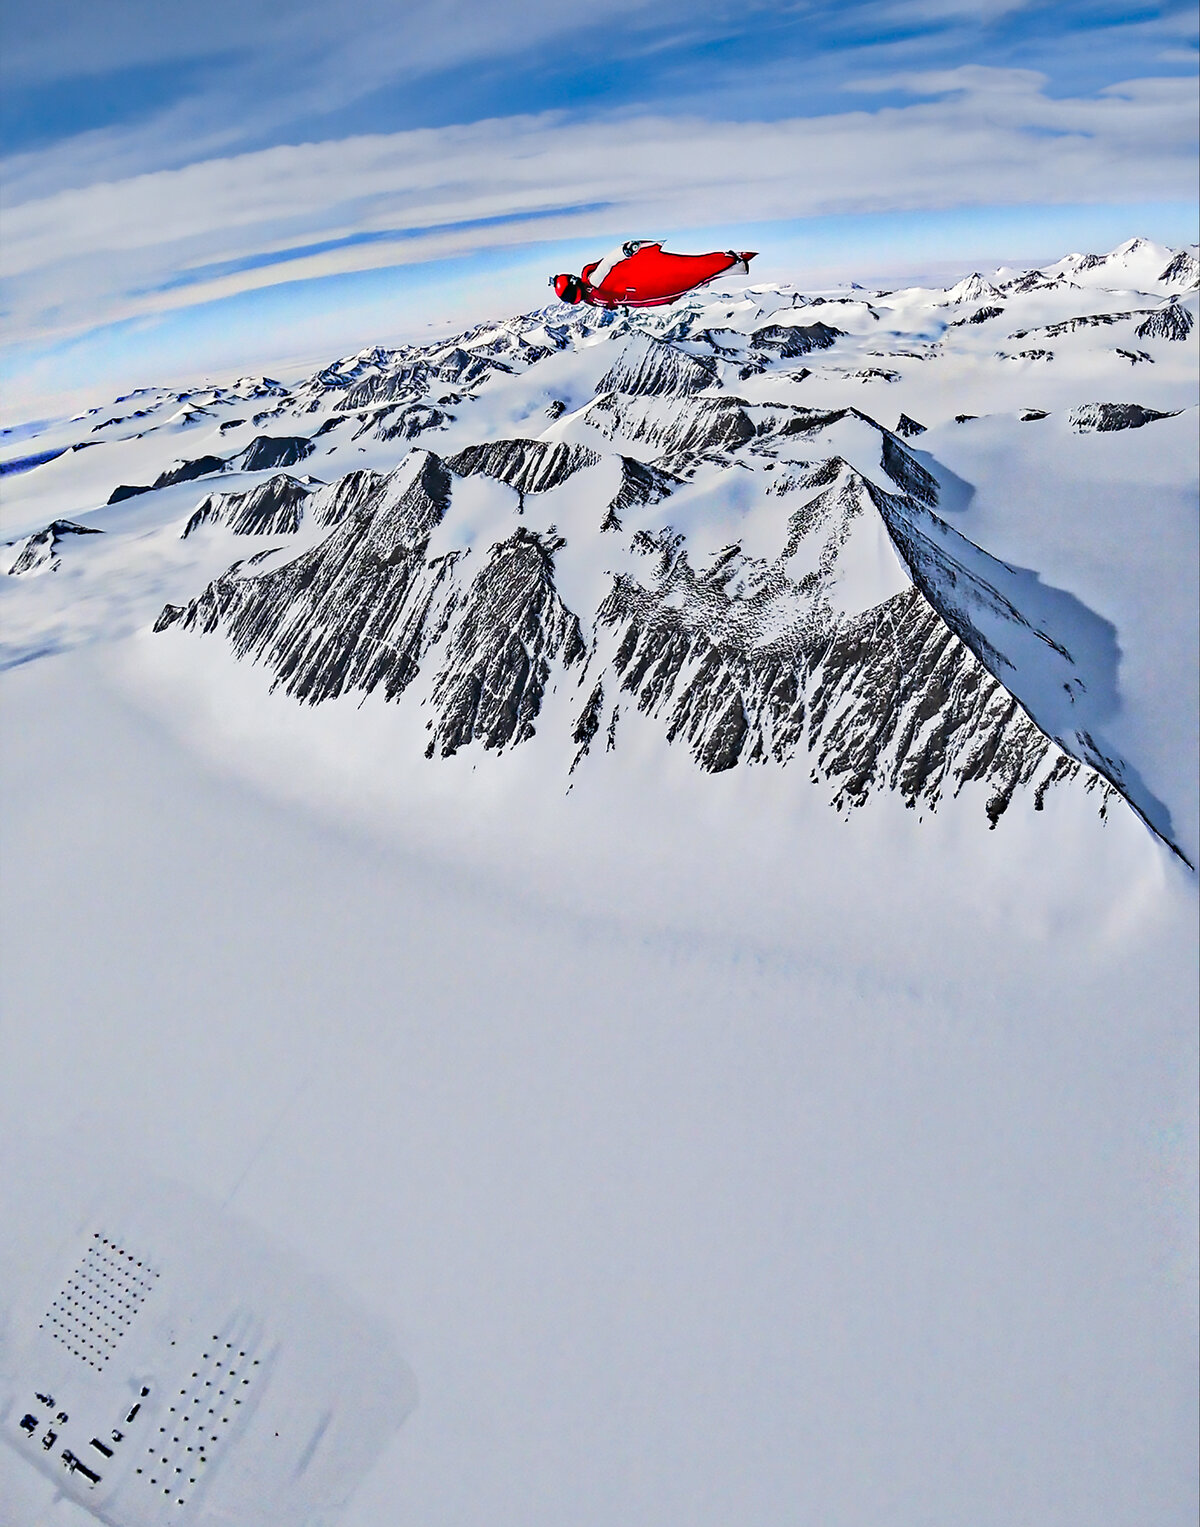 Flying over Mount Rossman and Union Glacier Camp